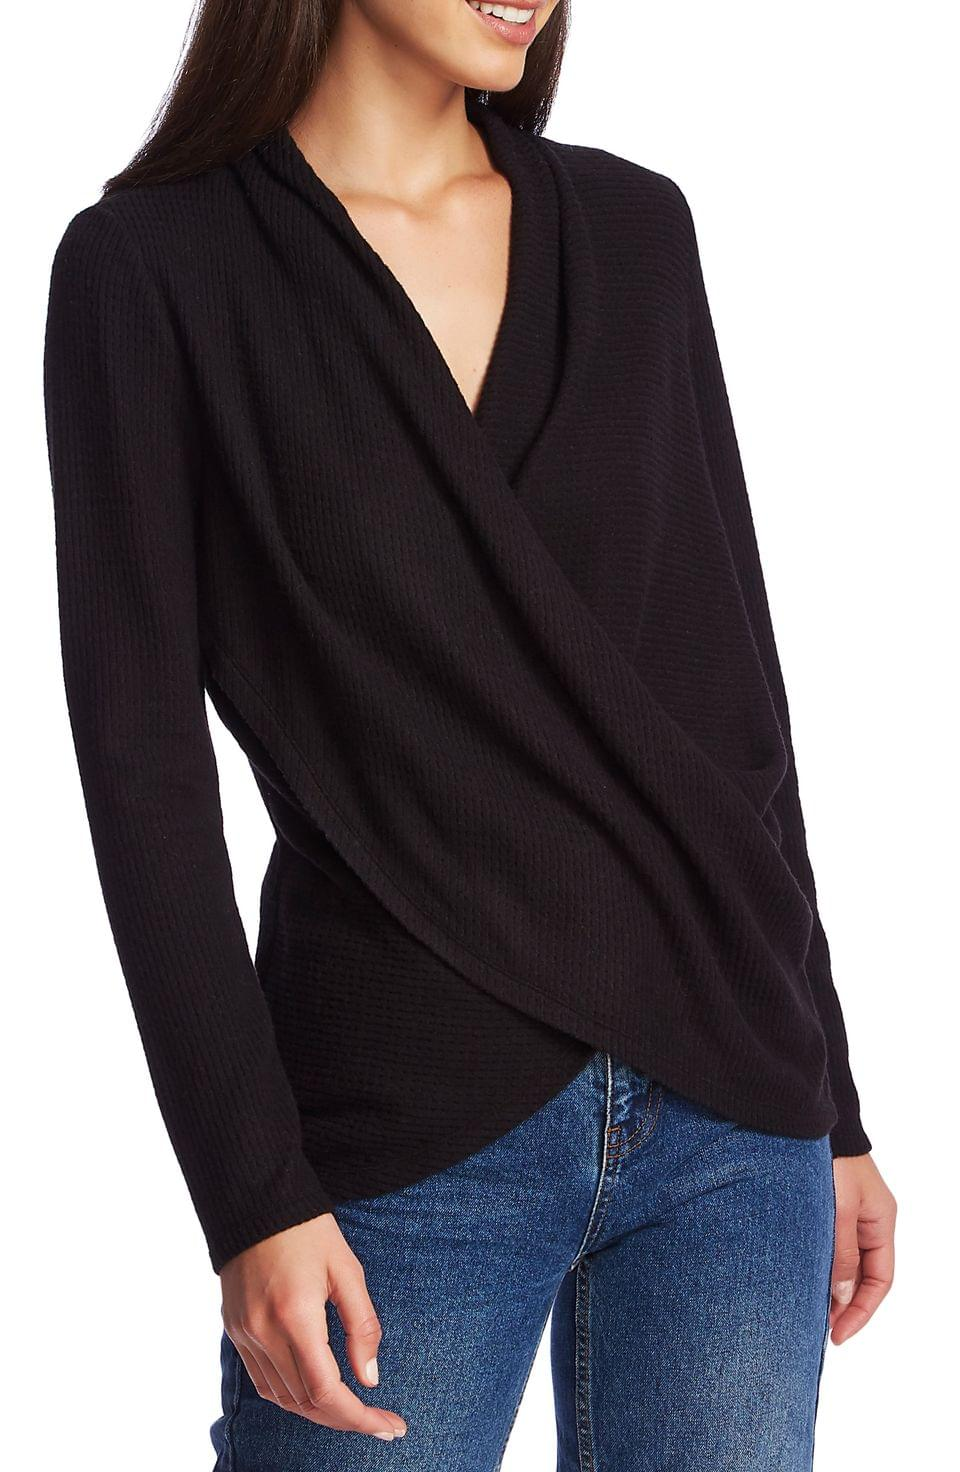 Women's 1.STATE Waffle Knit Cross Front Top